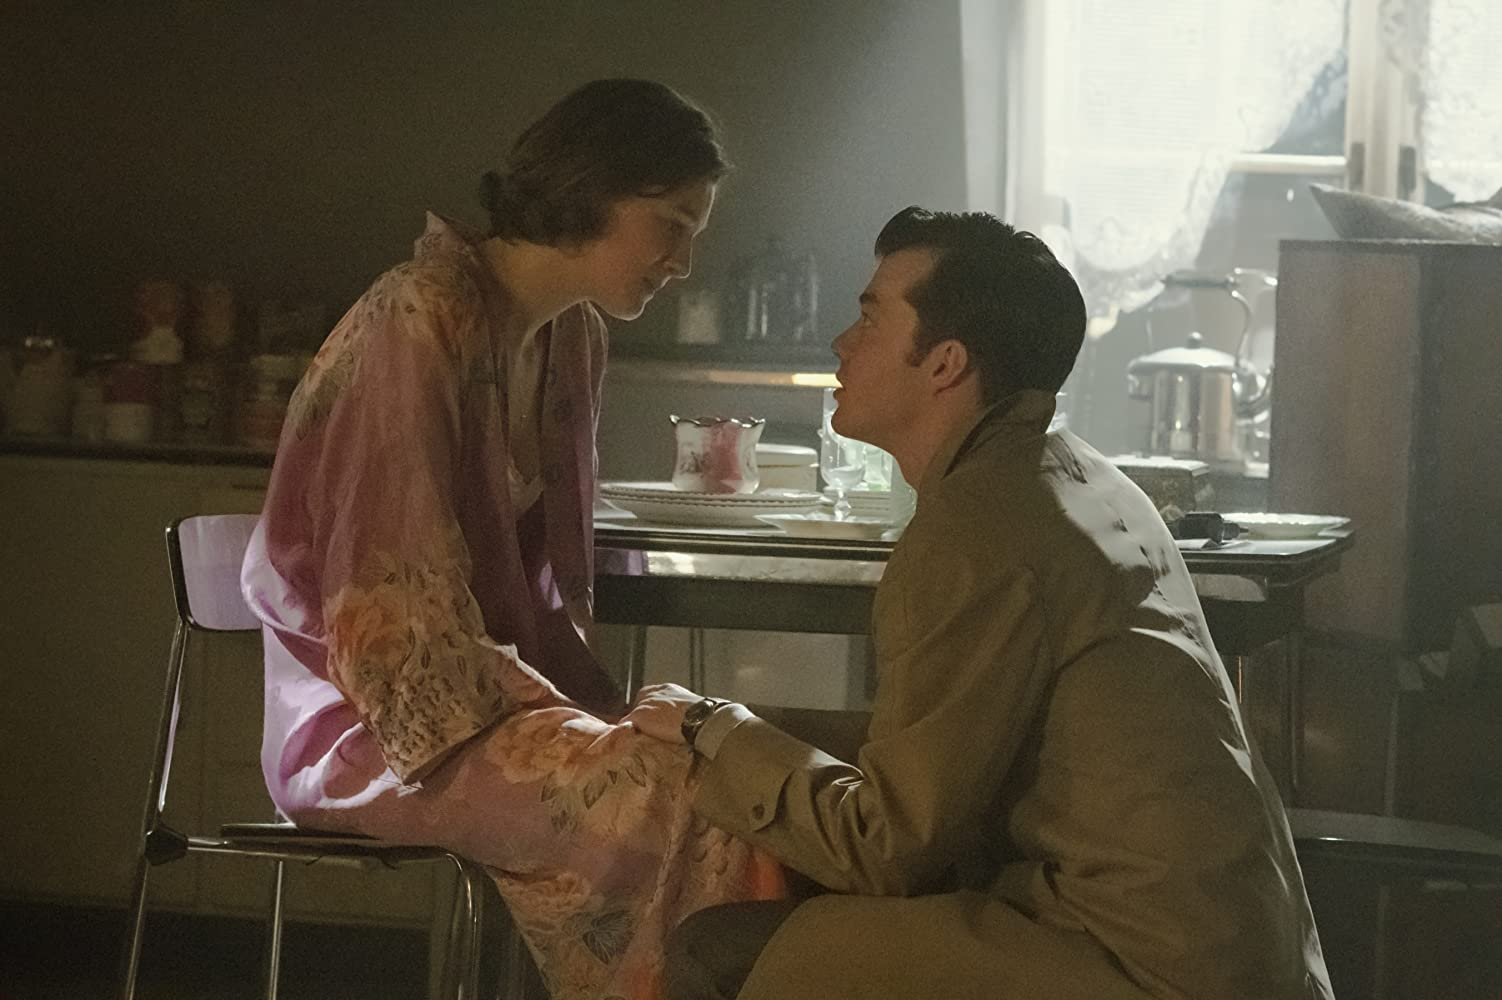 Emma Corrin and Jack Bannon in Pennyworth (2019)